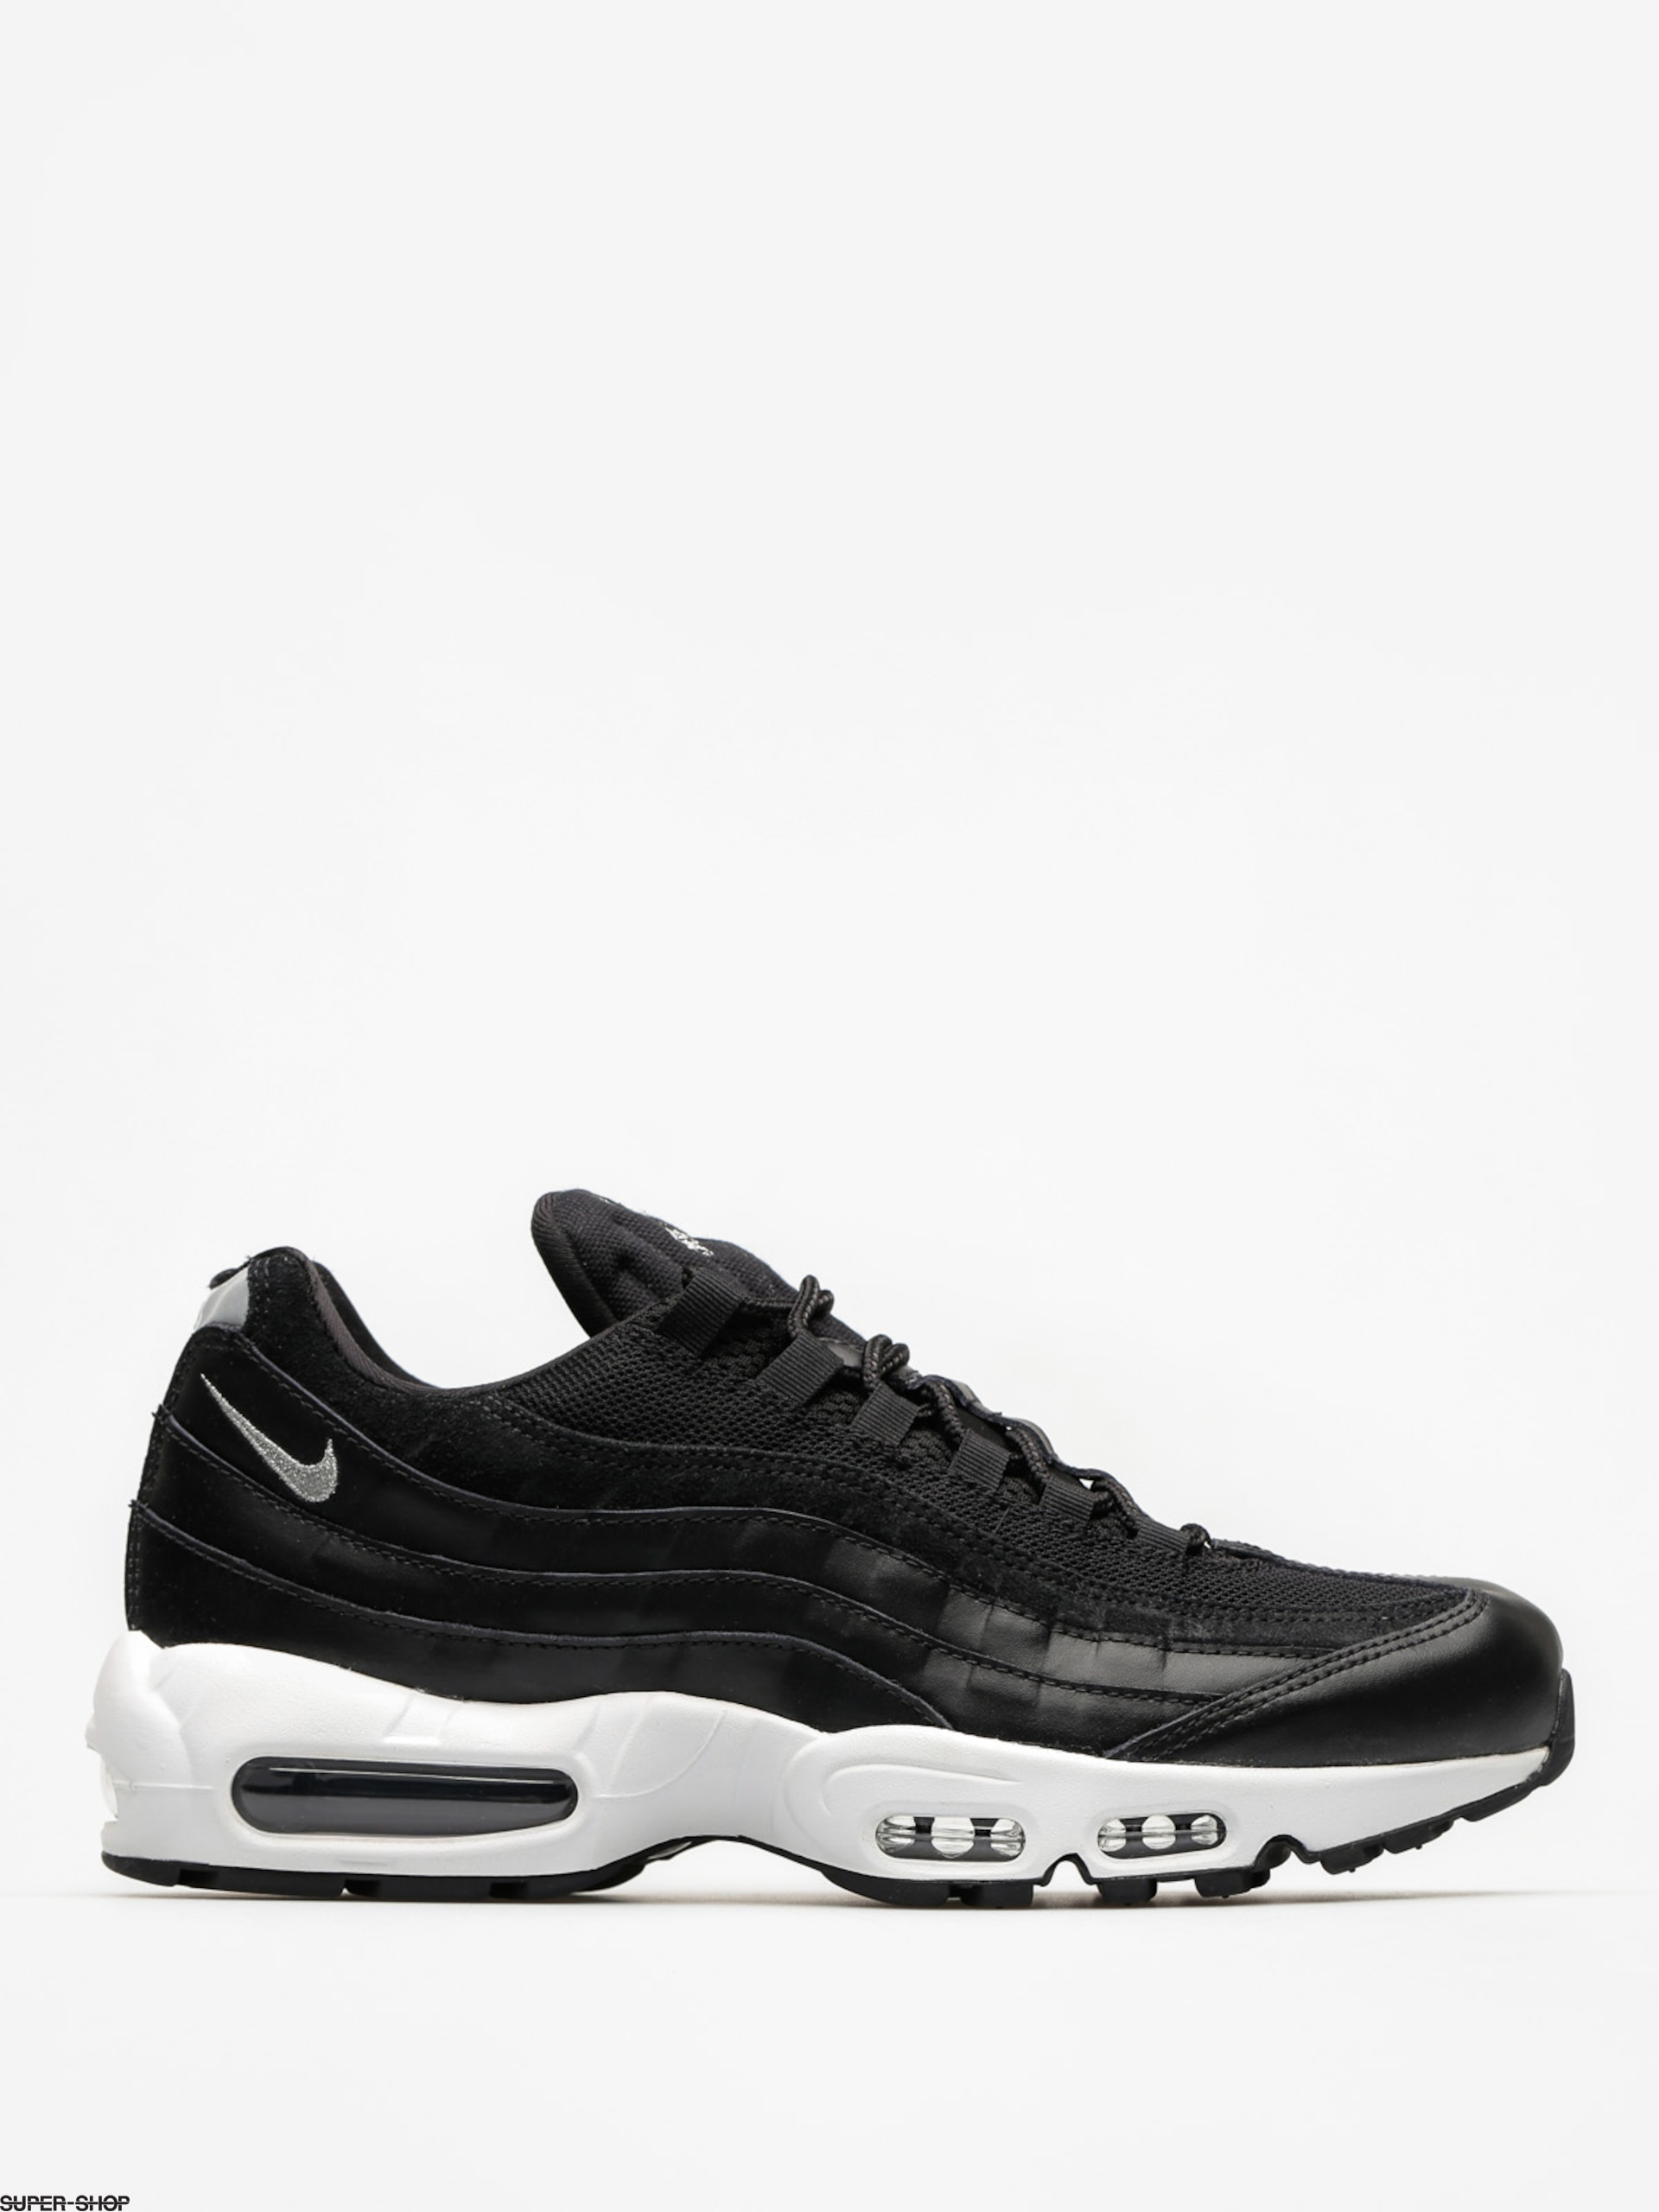 Nike Shoes Air Max 95 Premium (black/chrome black off white)